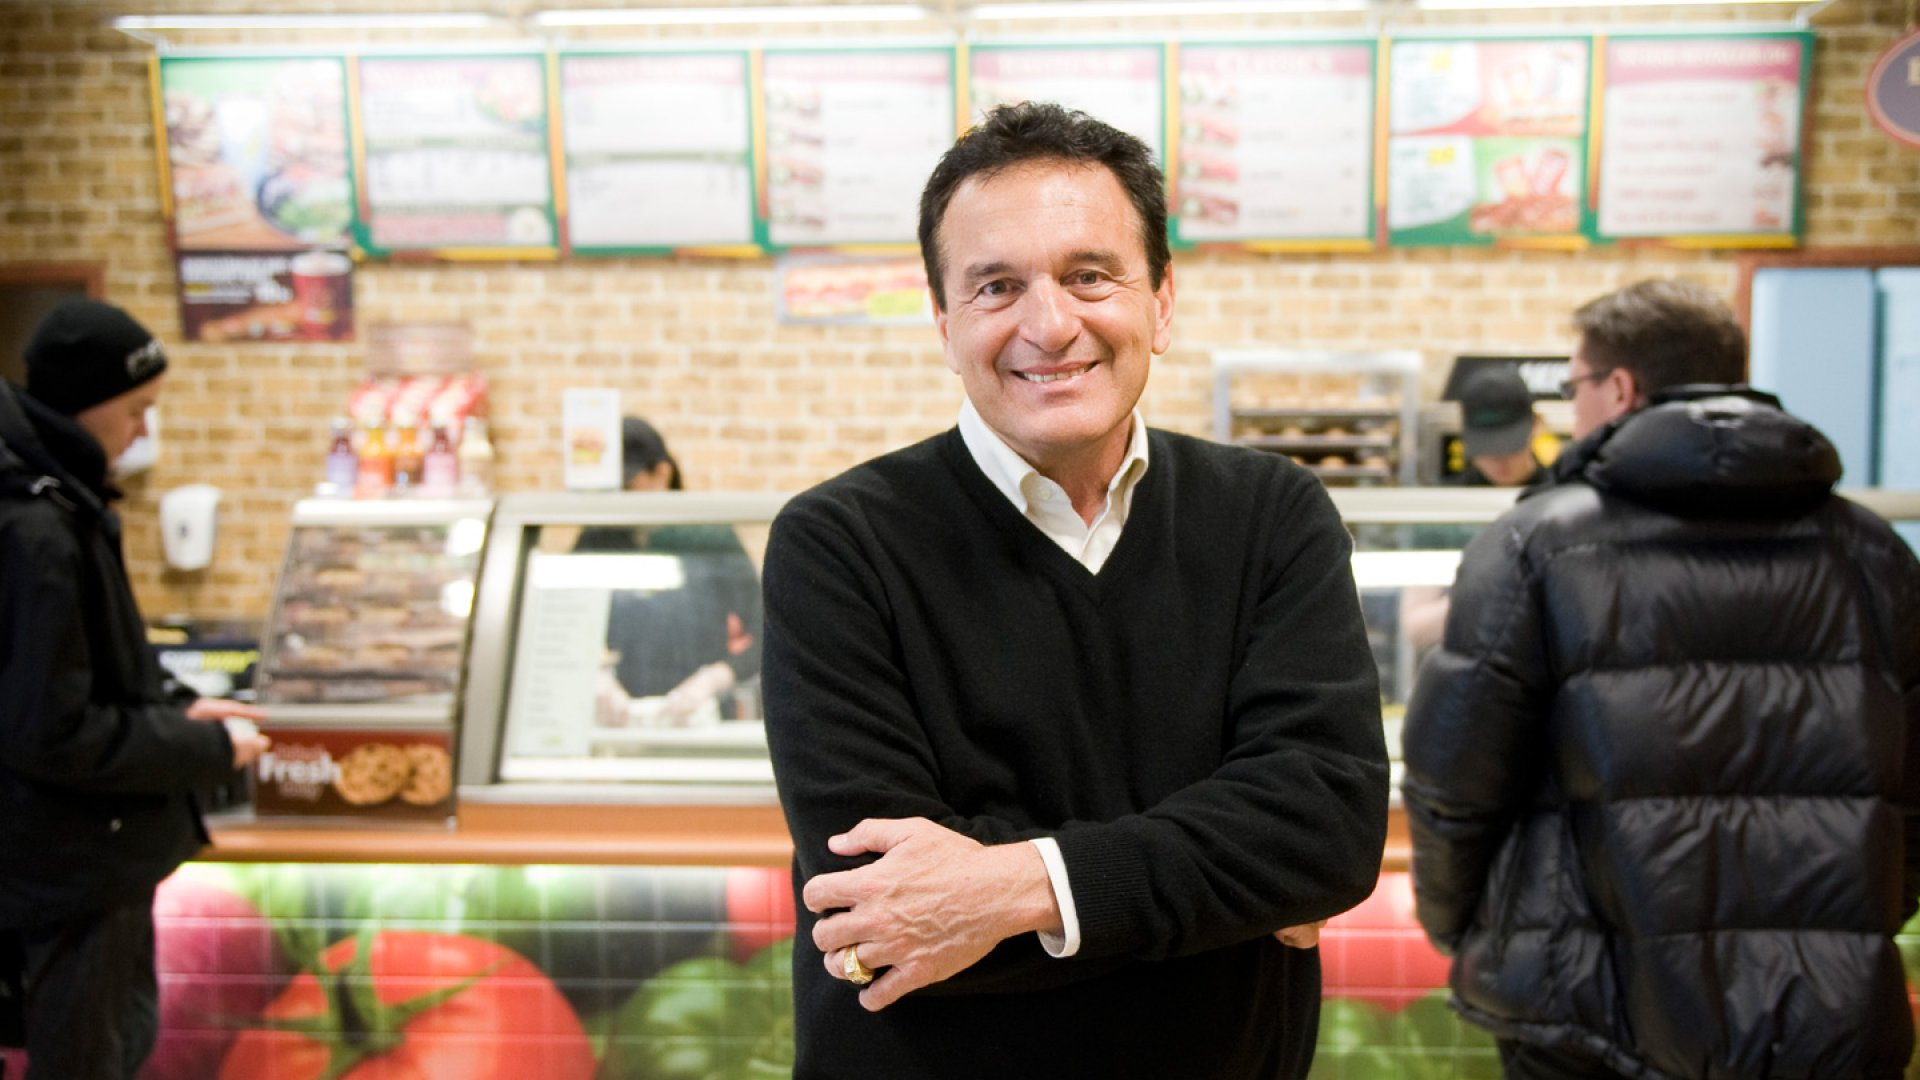 Fred DeLuca, President and founder of sandwich maker Subway, poses in a Subway restaurant at 'Solna Centrum' in Stockholm on March 10, 2011.